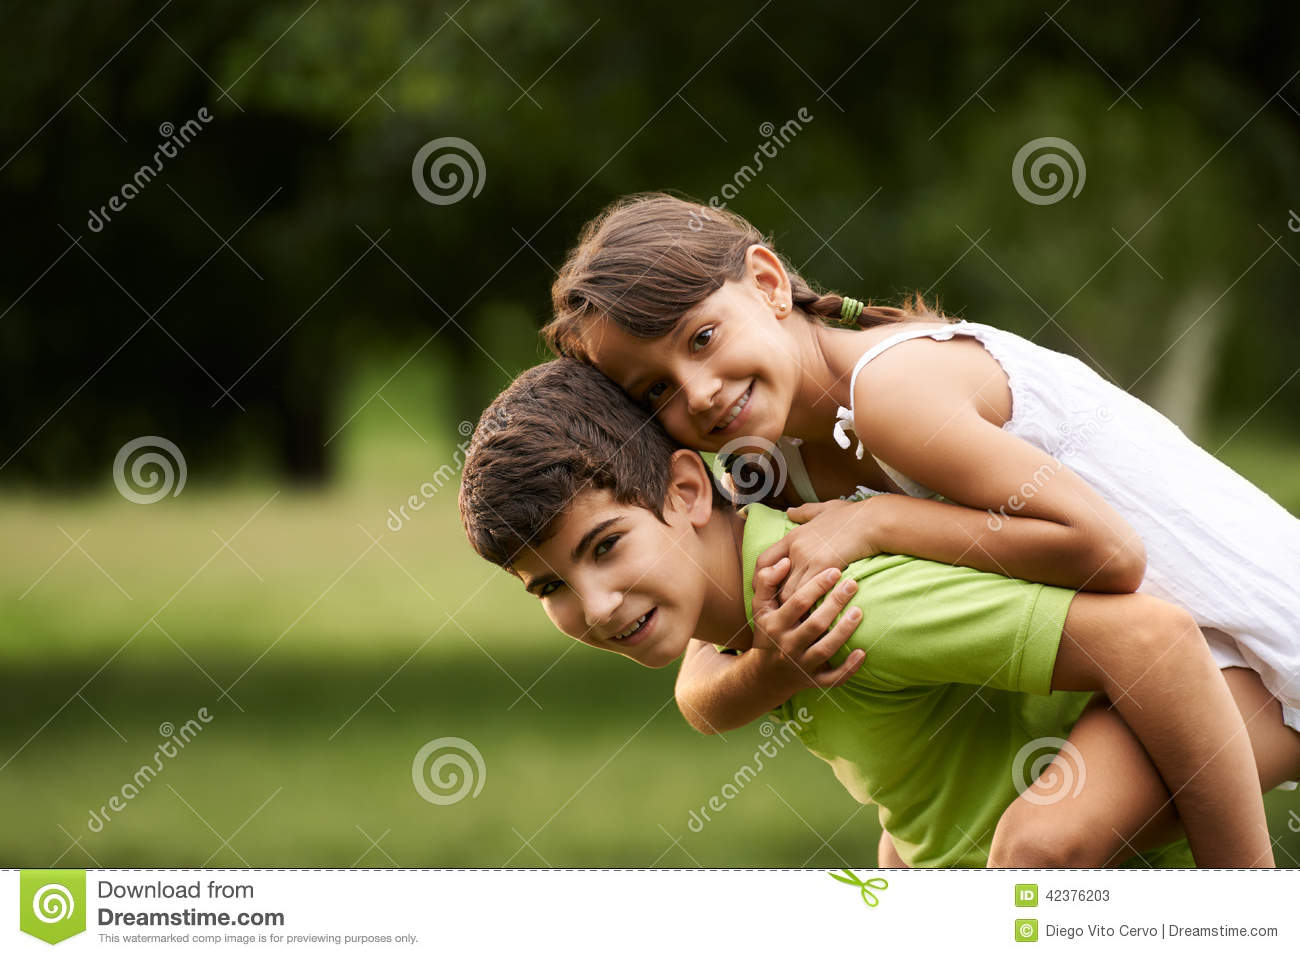 Children Boy And Girl In Love Running Piggyback Park Stock ...